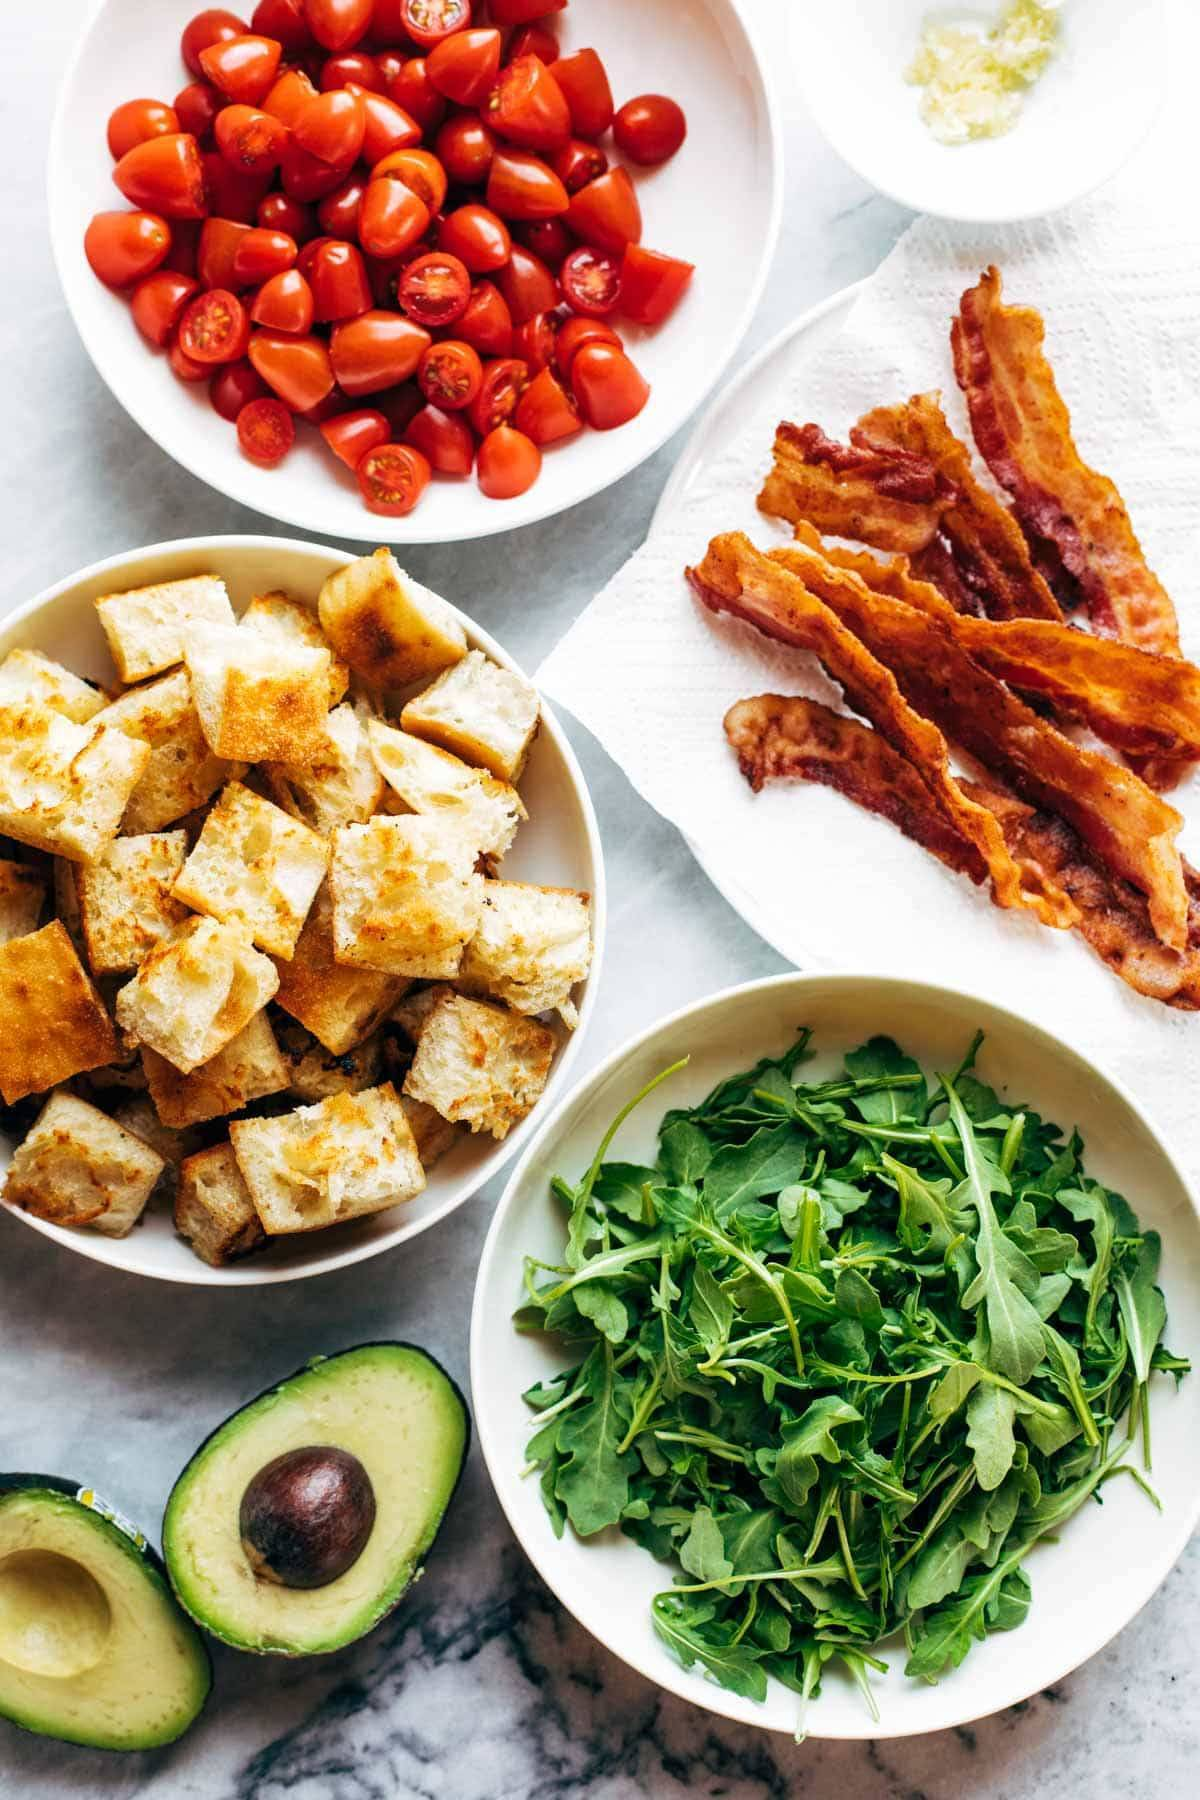 Ingredients for BLT Panzanella in bowls.